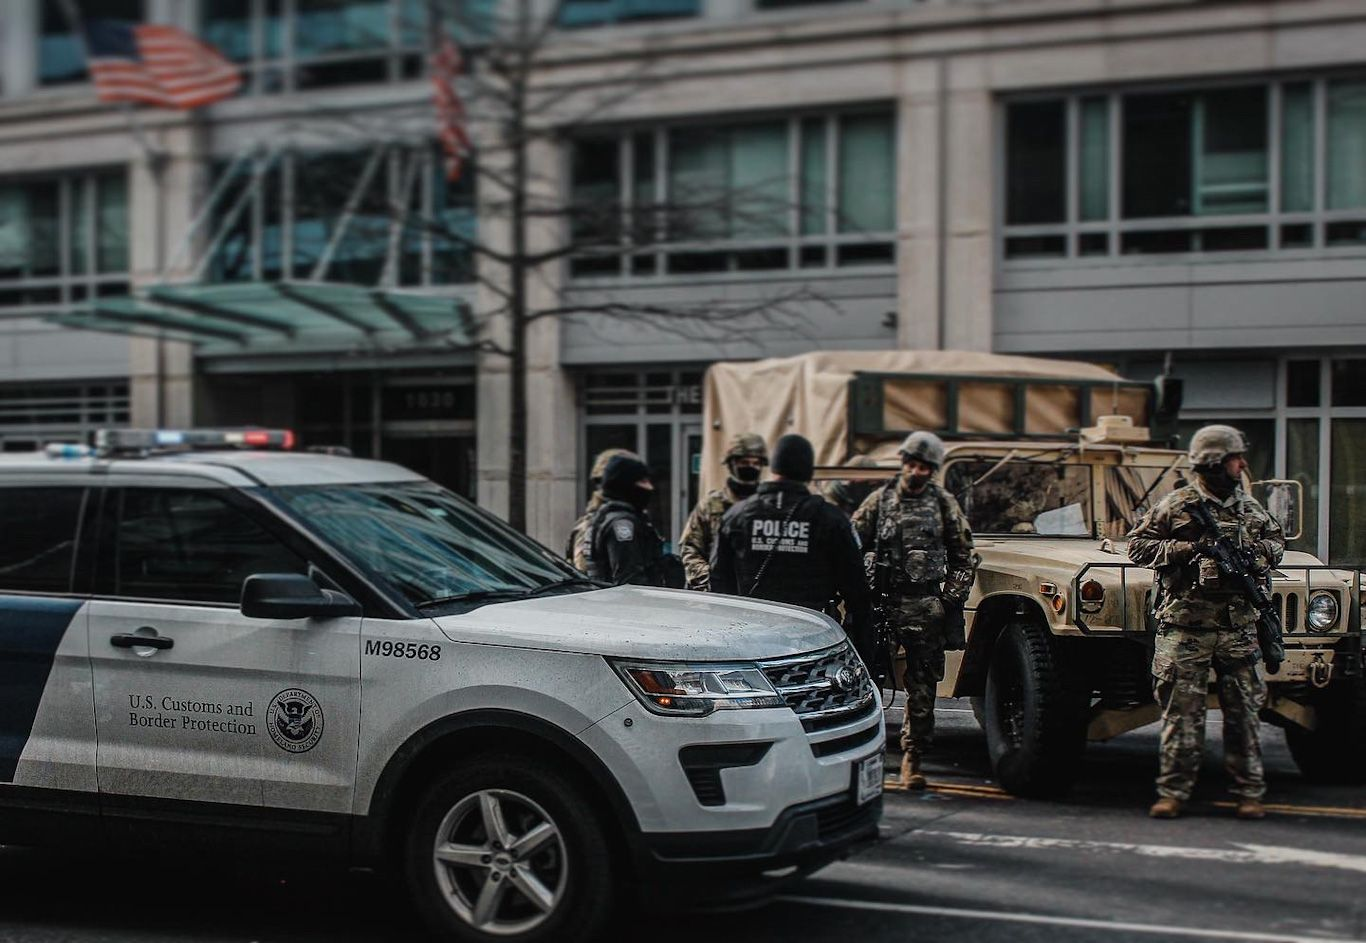 CBP and military police stand at an intersection close to inauguration green zone